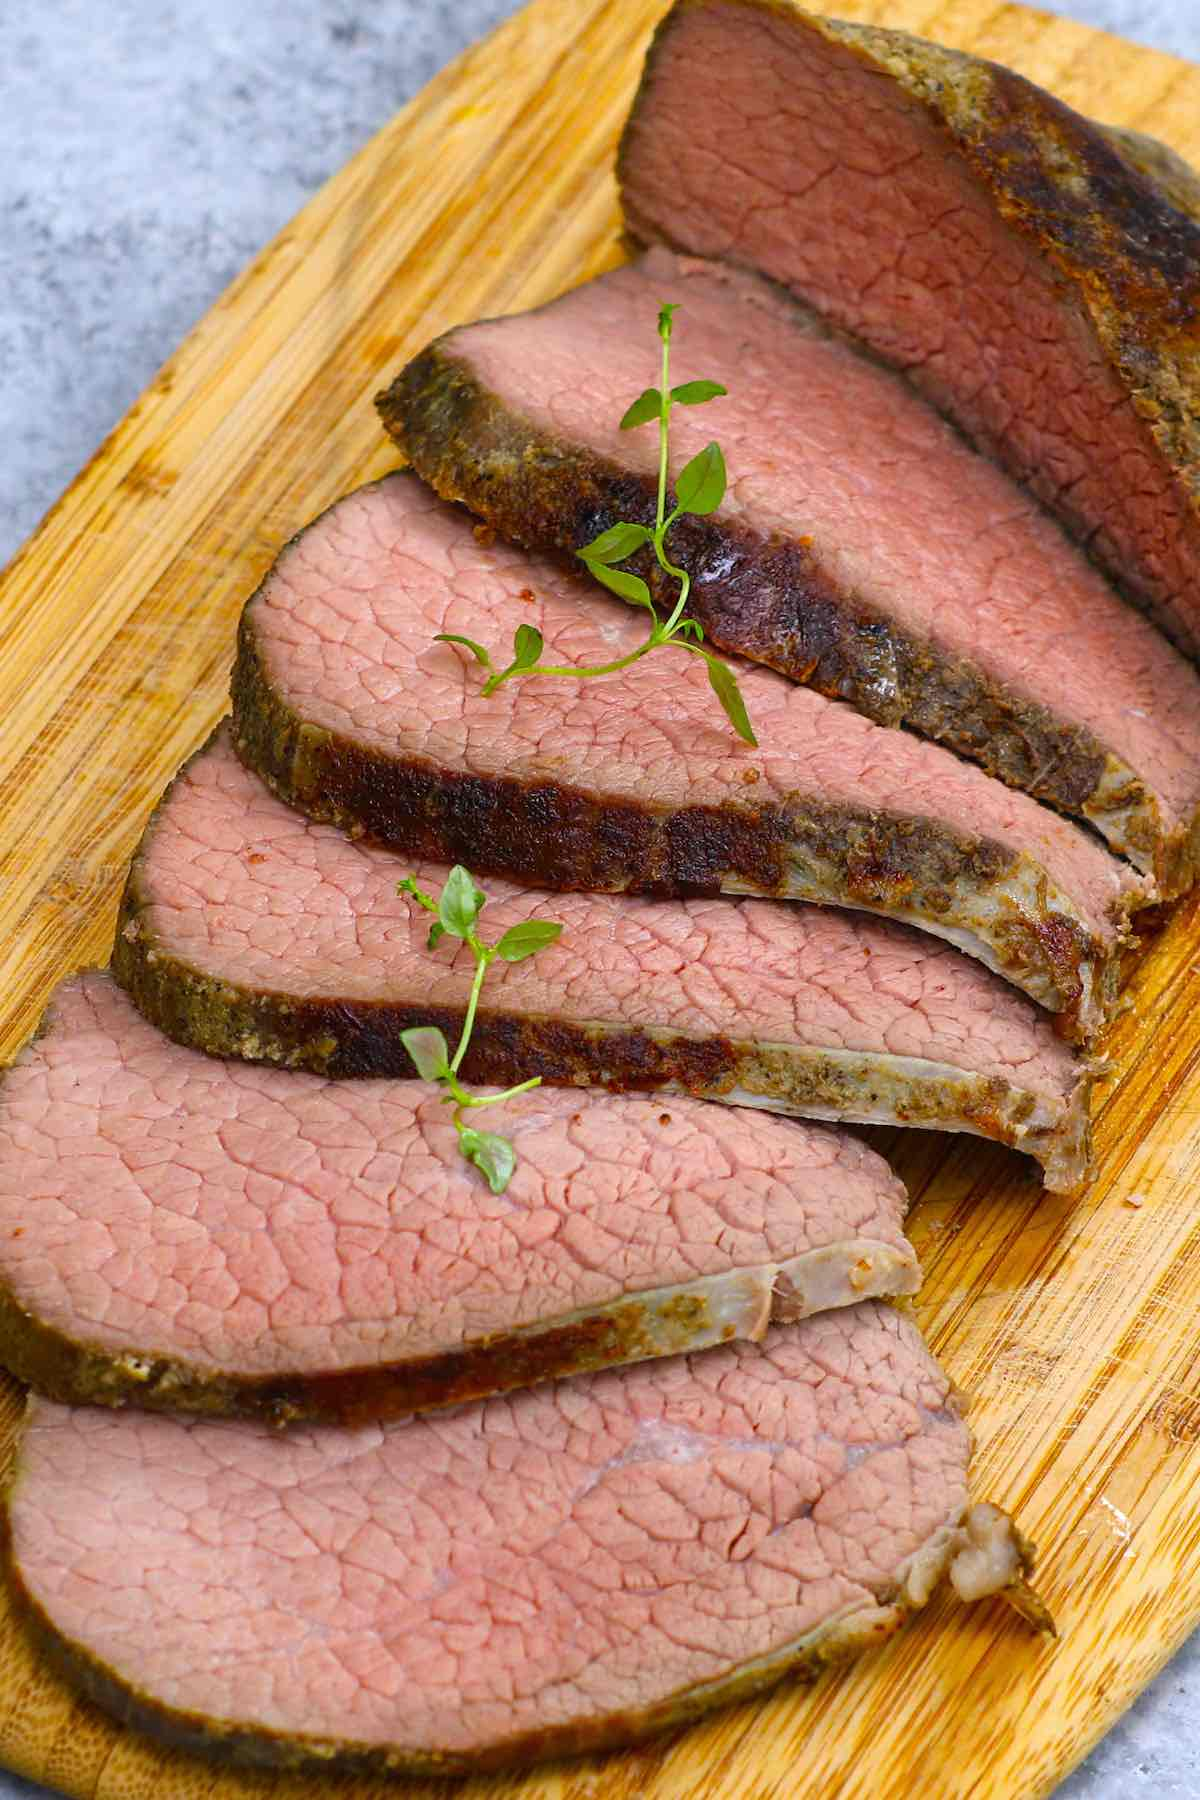 Sous Vide Eye of Round is the best way to cook this affordable beef cut, turning it into the most tender and juicy roast! This 16-hour low and slow sous vide method transforms the tough cut into a delicious eye of round roast that's perfectly moist from edge to edge. Great for a festive holiday meal on a budget! #SousVideEyeOfRound